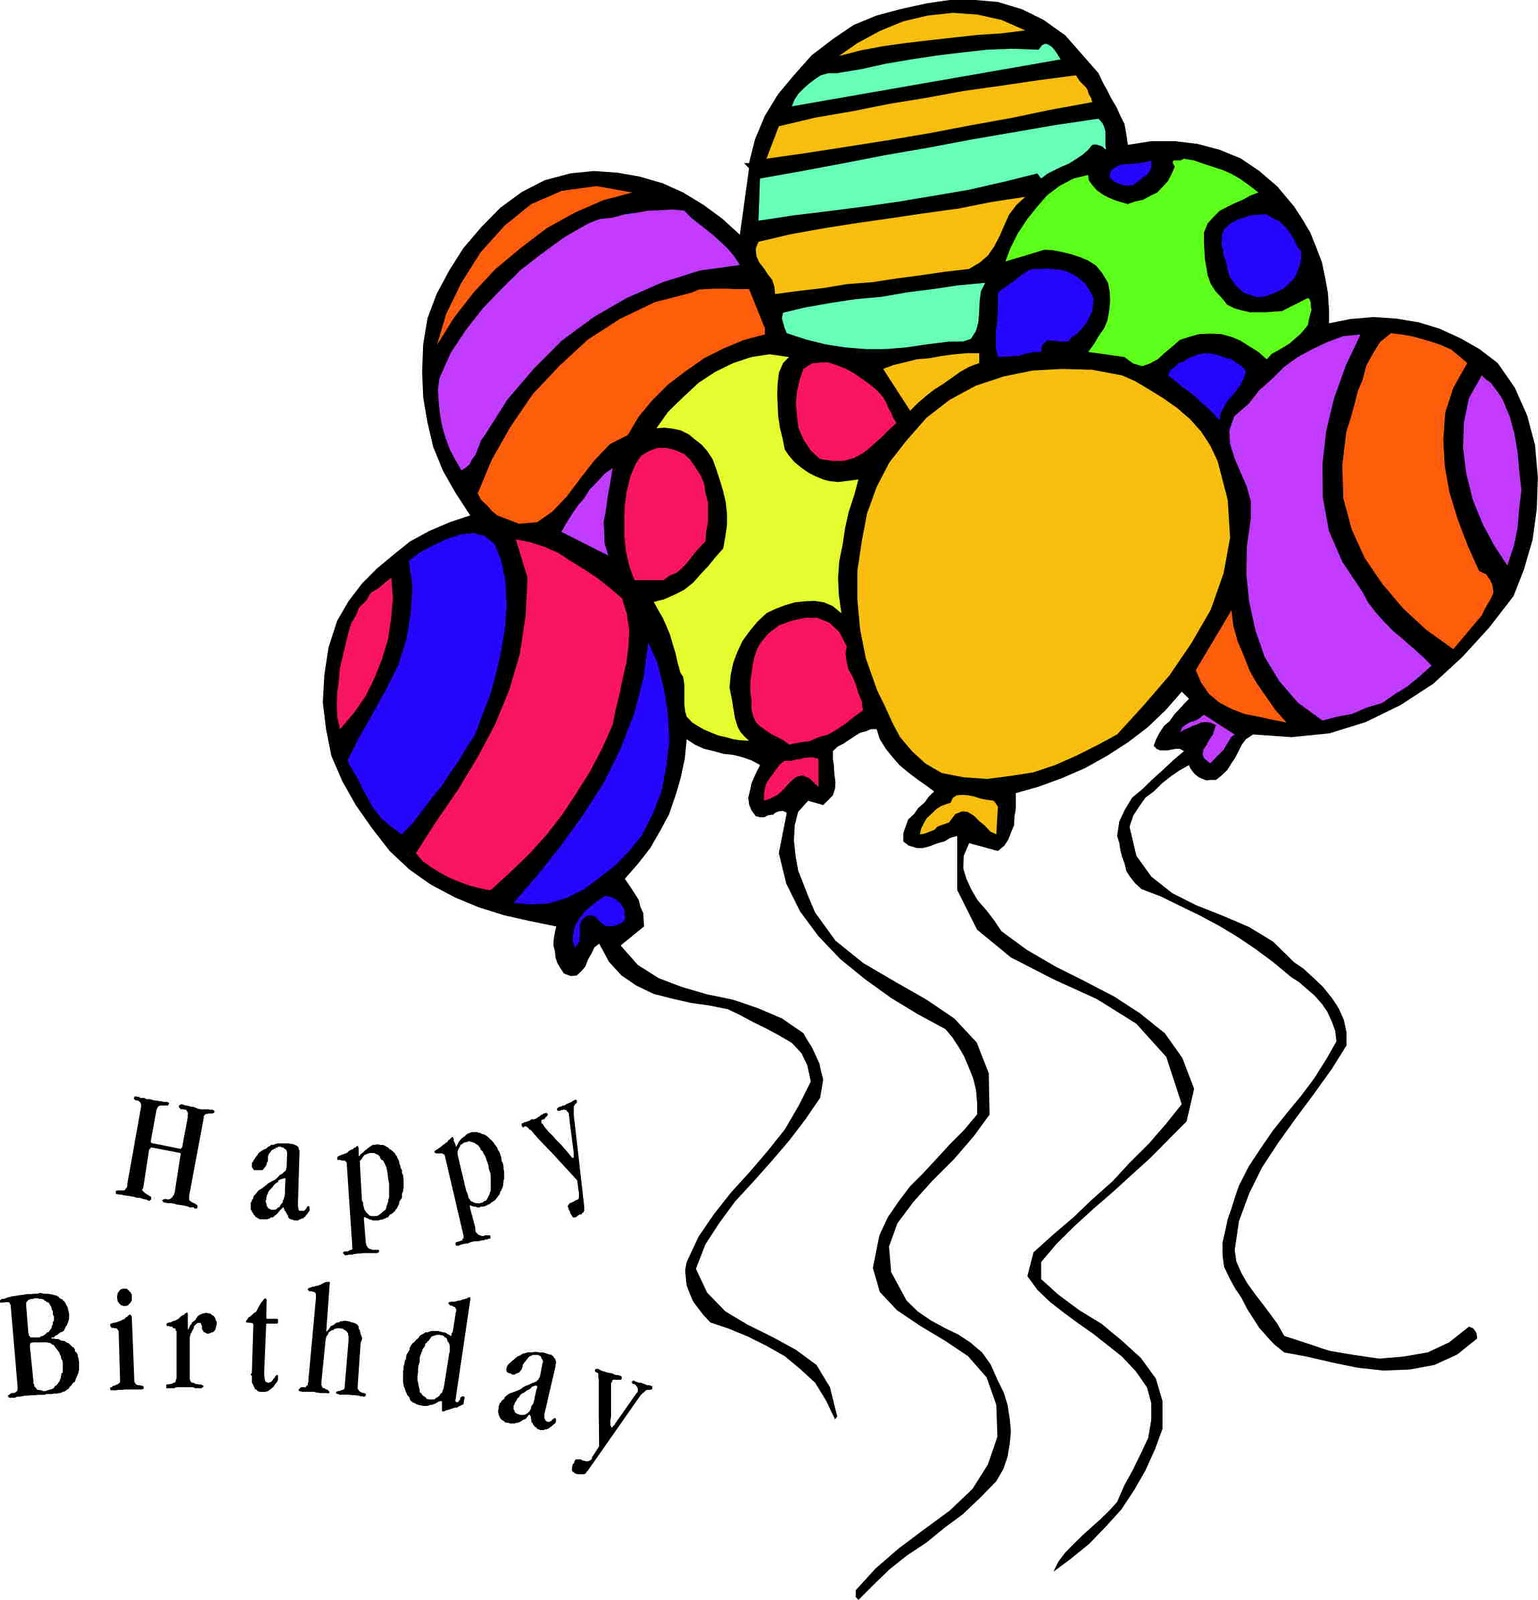 Free 50th Birthday Clipart, Download Free Clip Art, Free.